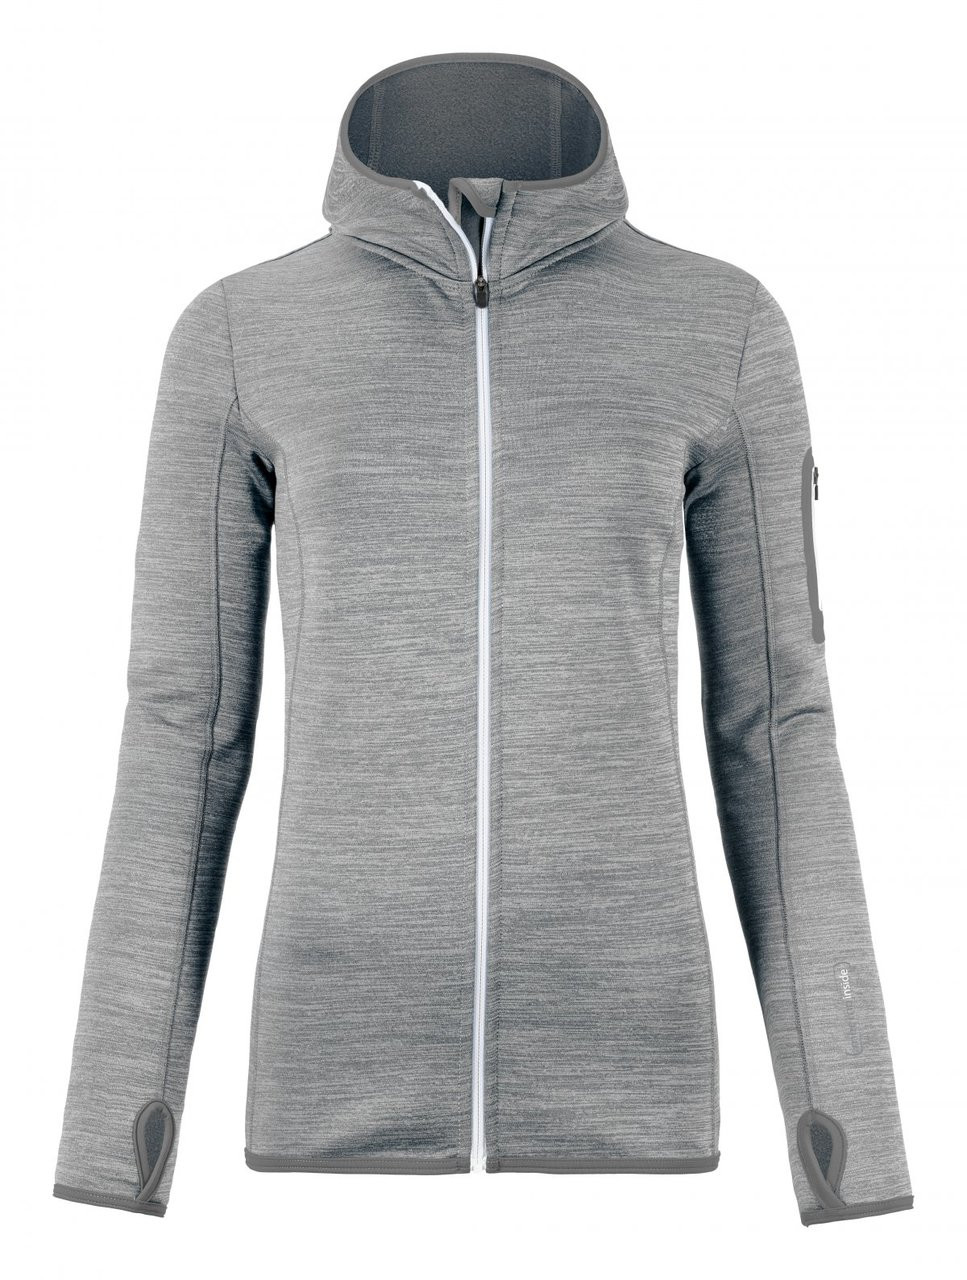 Ortovox Fleece Melange Hoody - Grey Blend